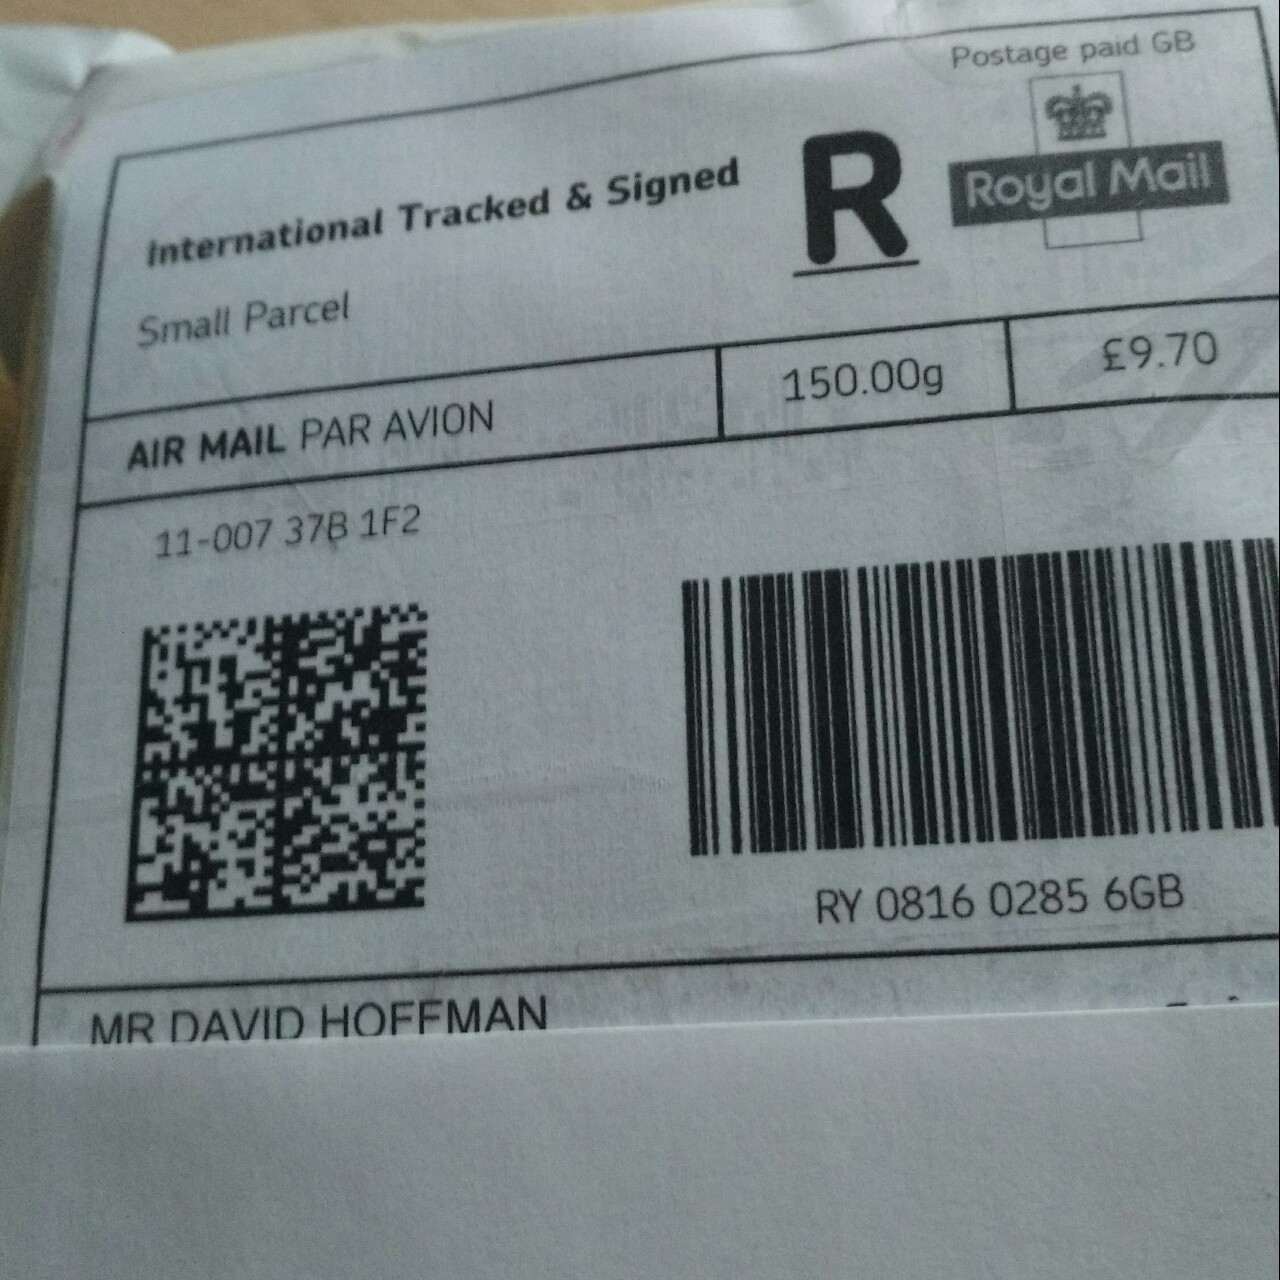 Royal Mail International Tracked & Signed Airmail